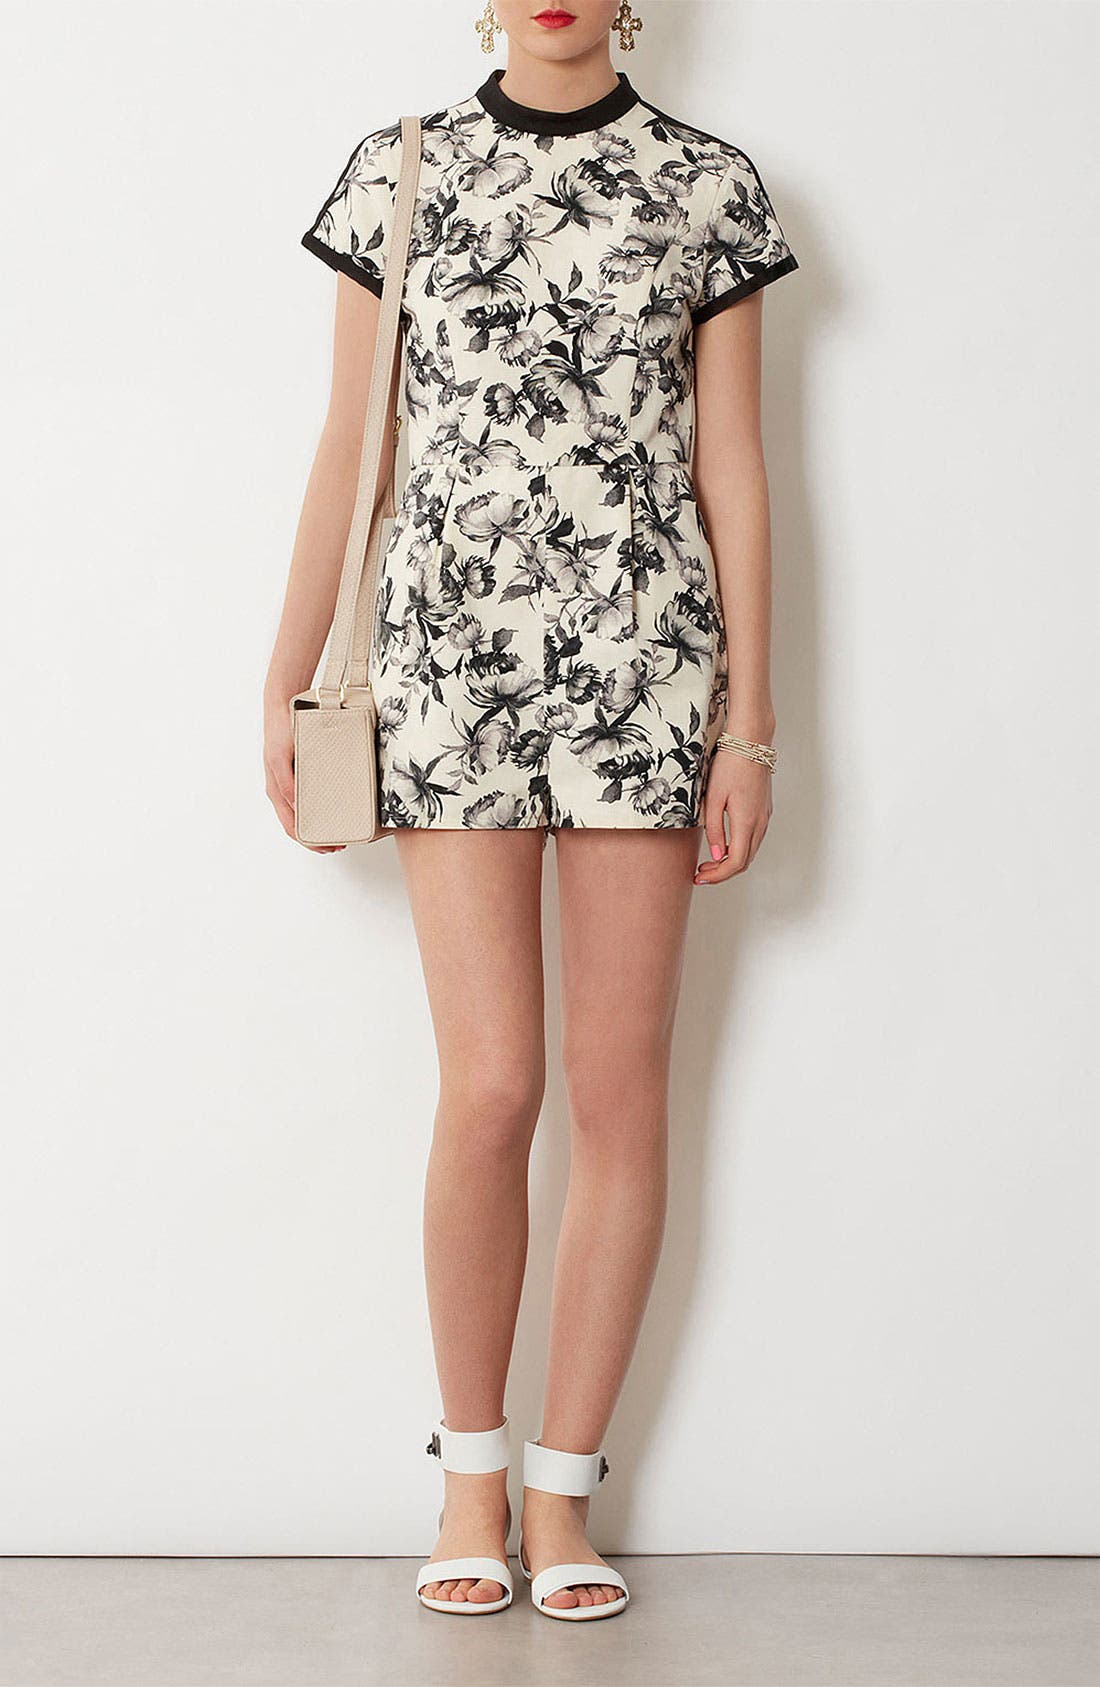 Alternate Image 1 Selected - Topshop 'Mono Floral' Print Romper